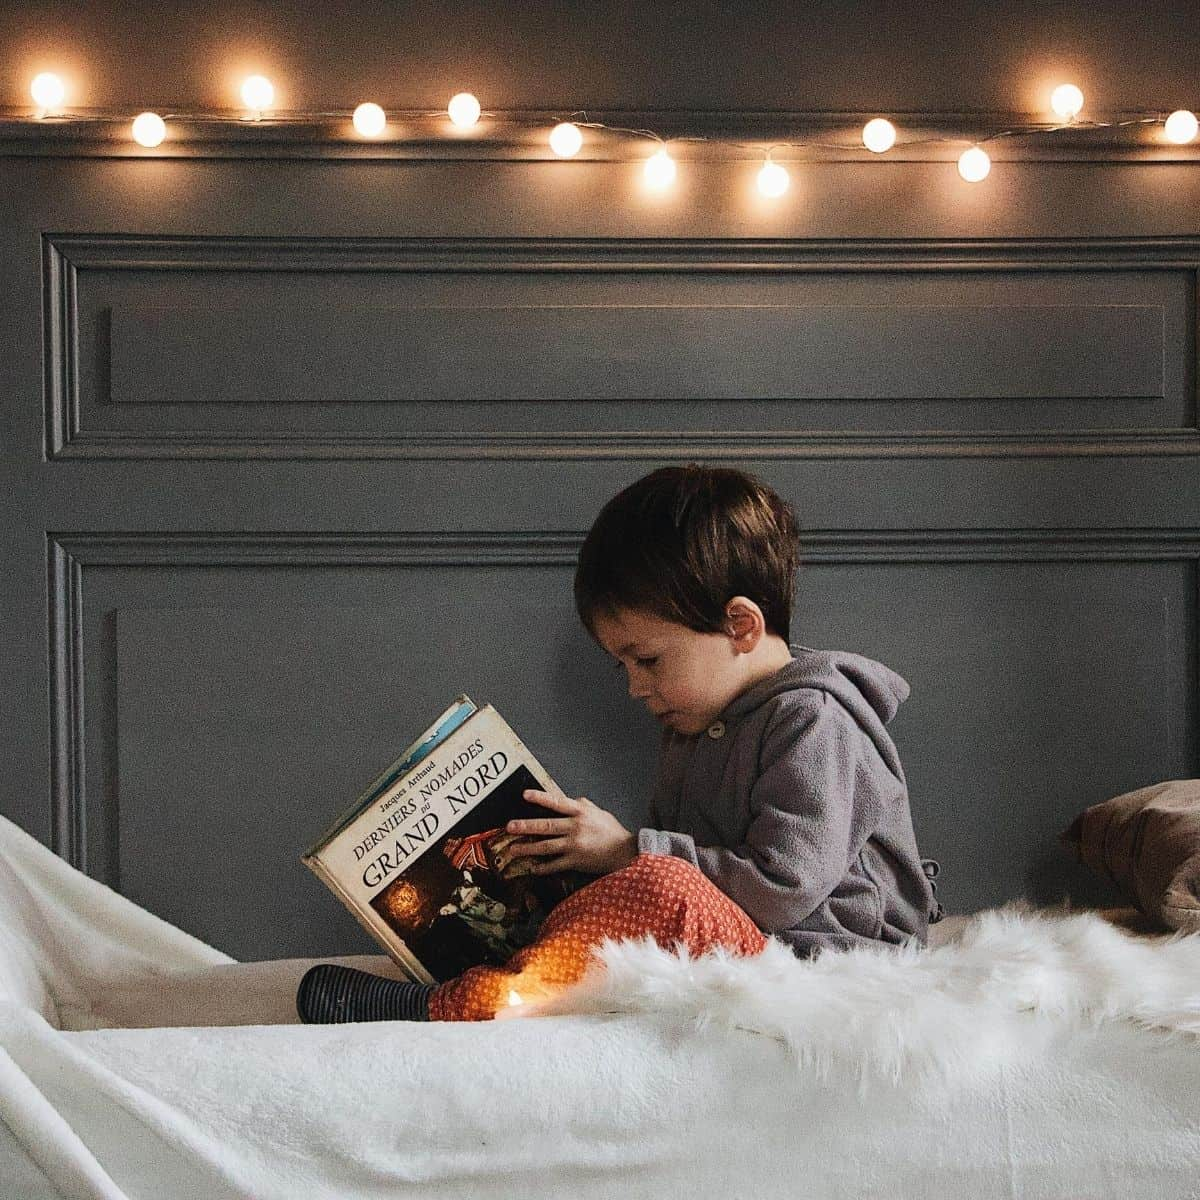 Toddler is reading a book while in bed with nightlights spread out on headboard